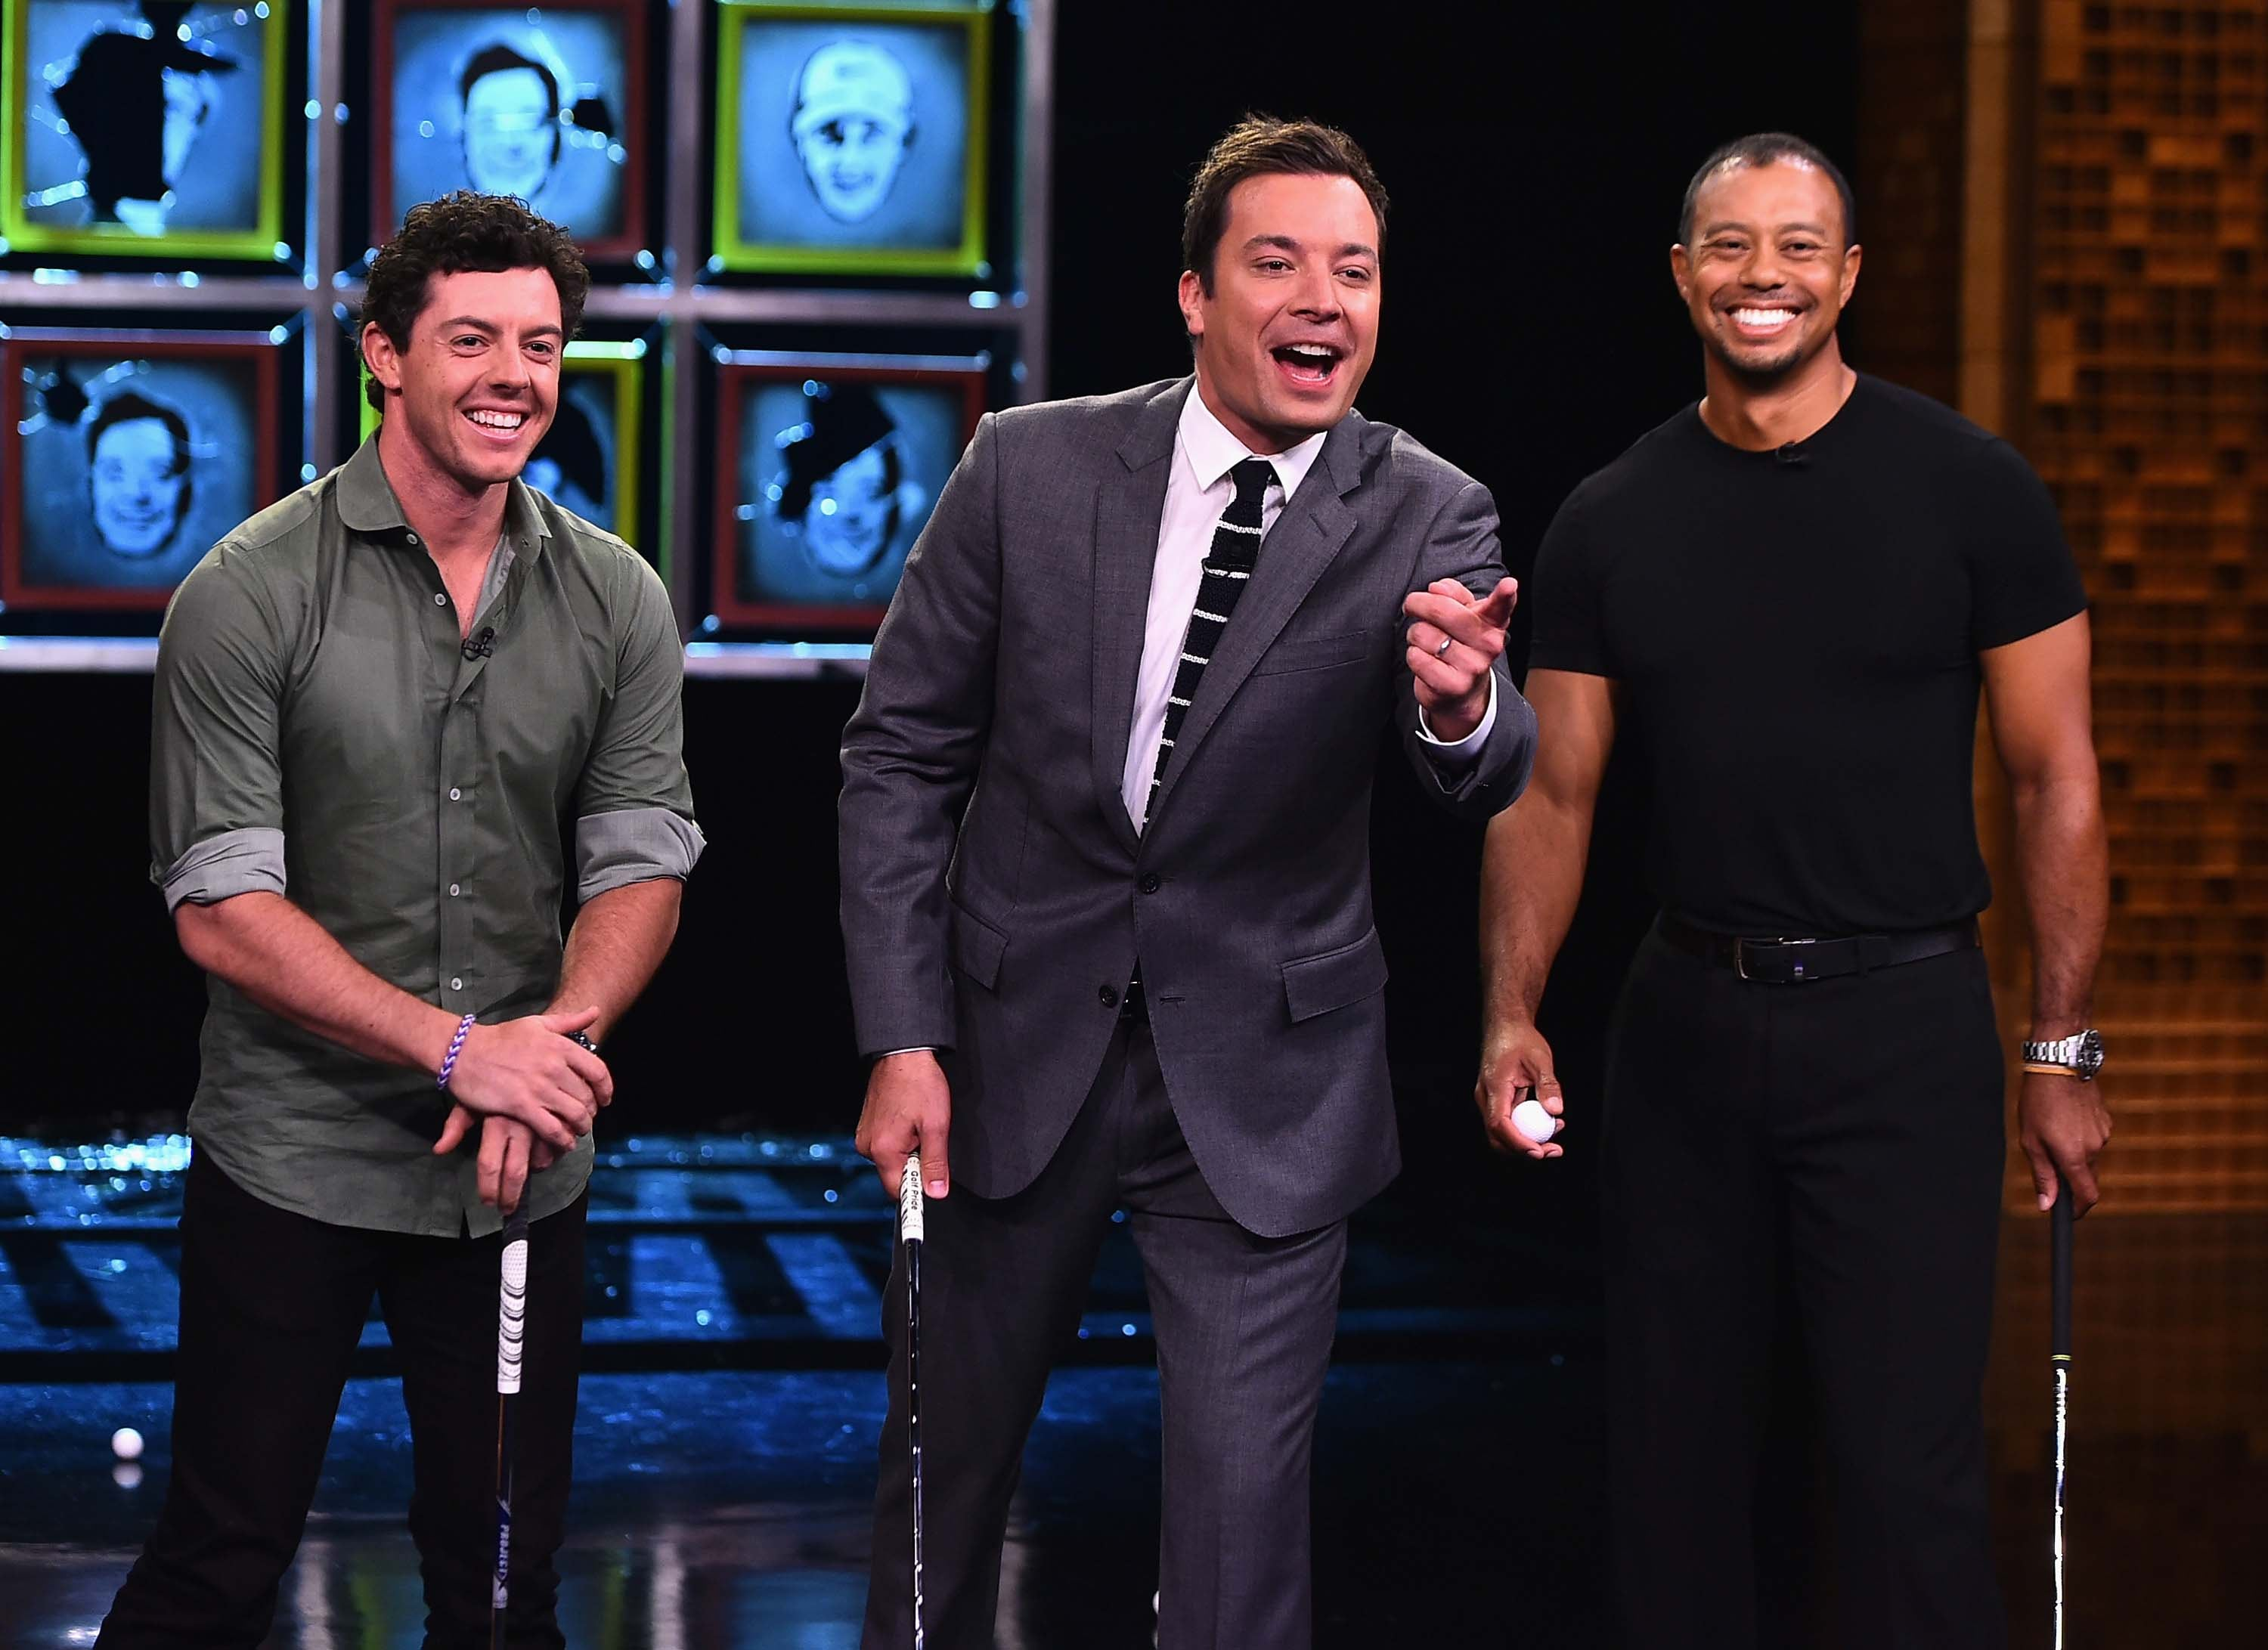 Tiger and Rory on 'The Tonight Show Starring Jimmy Fallon'